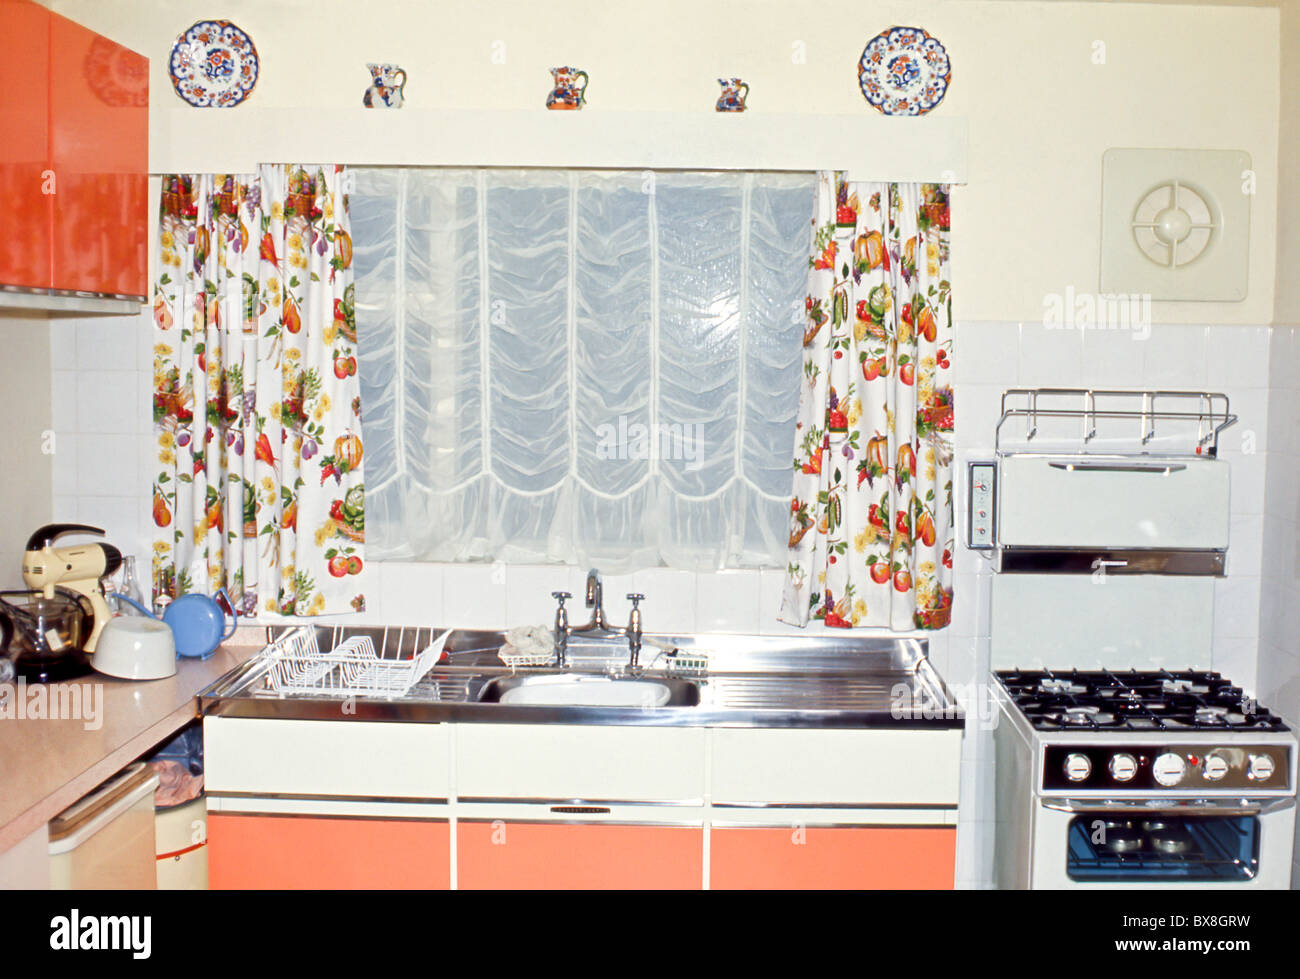 1960s Kitchen Appliances High Resolution Stock Photography And Images Alamy